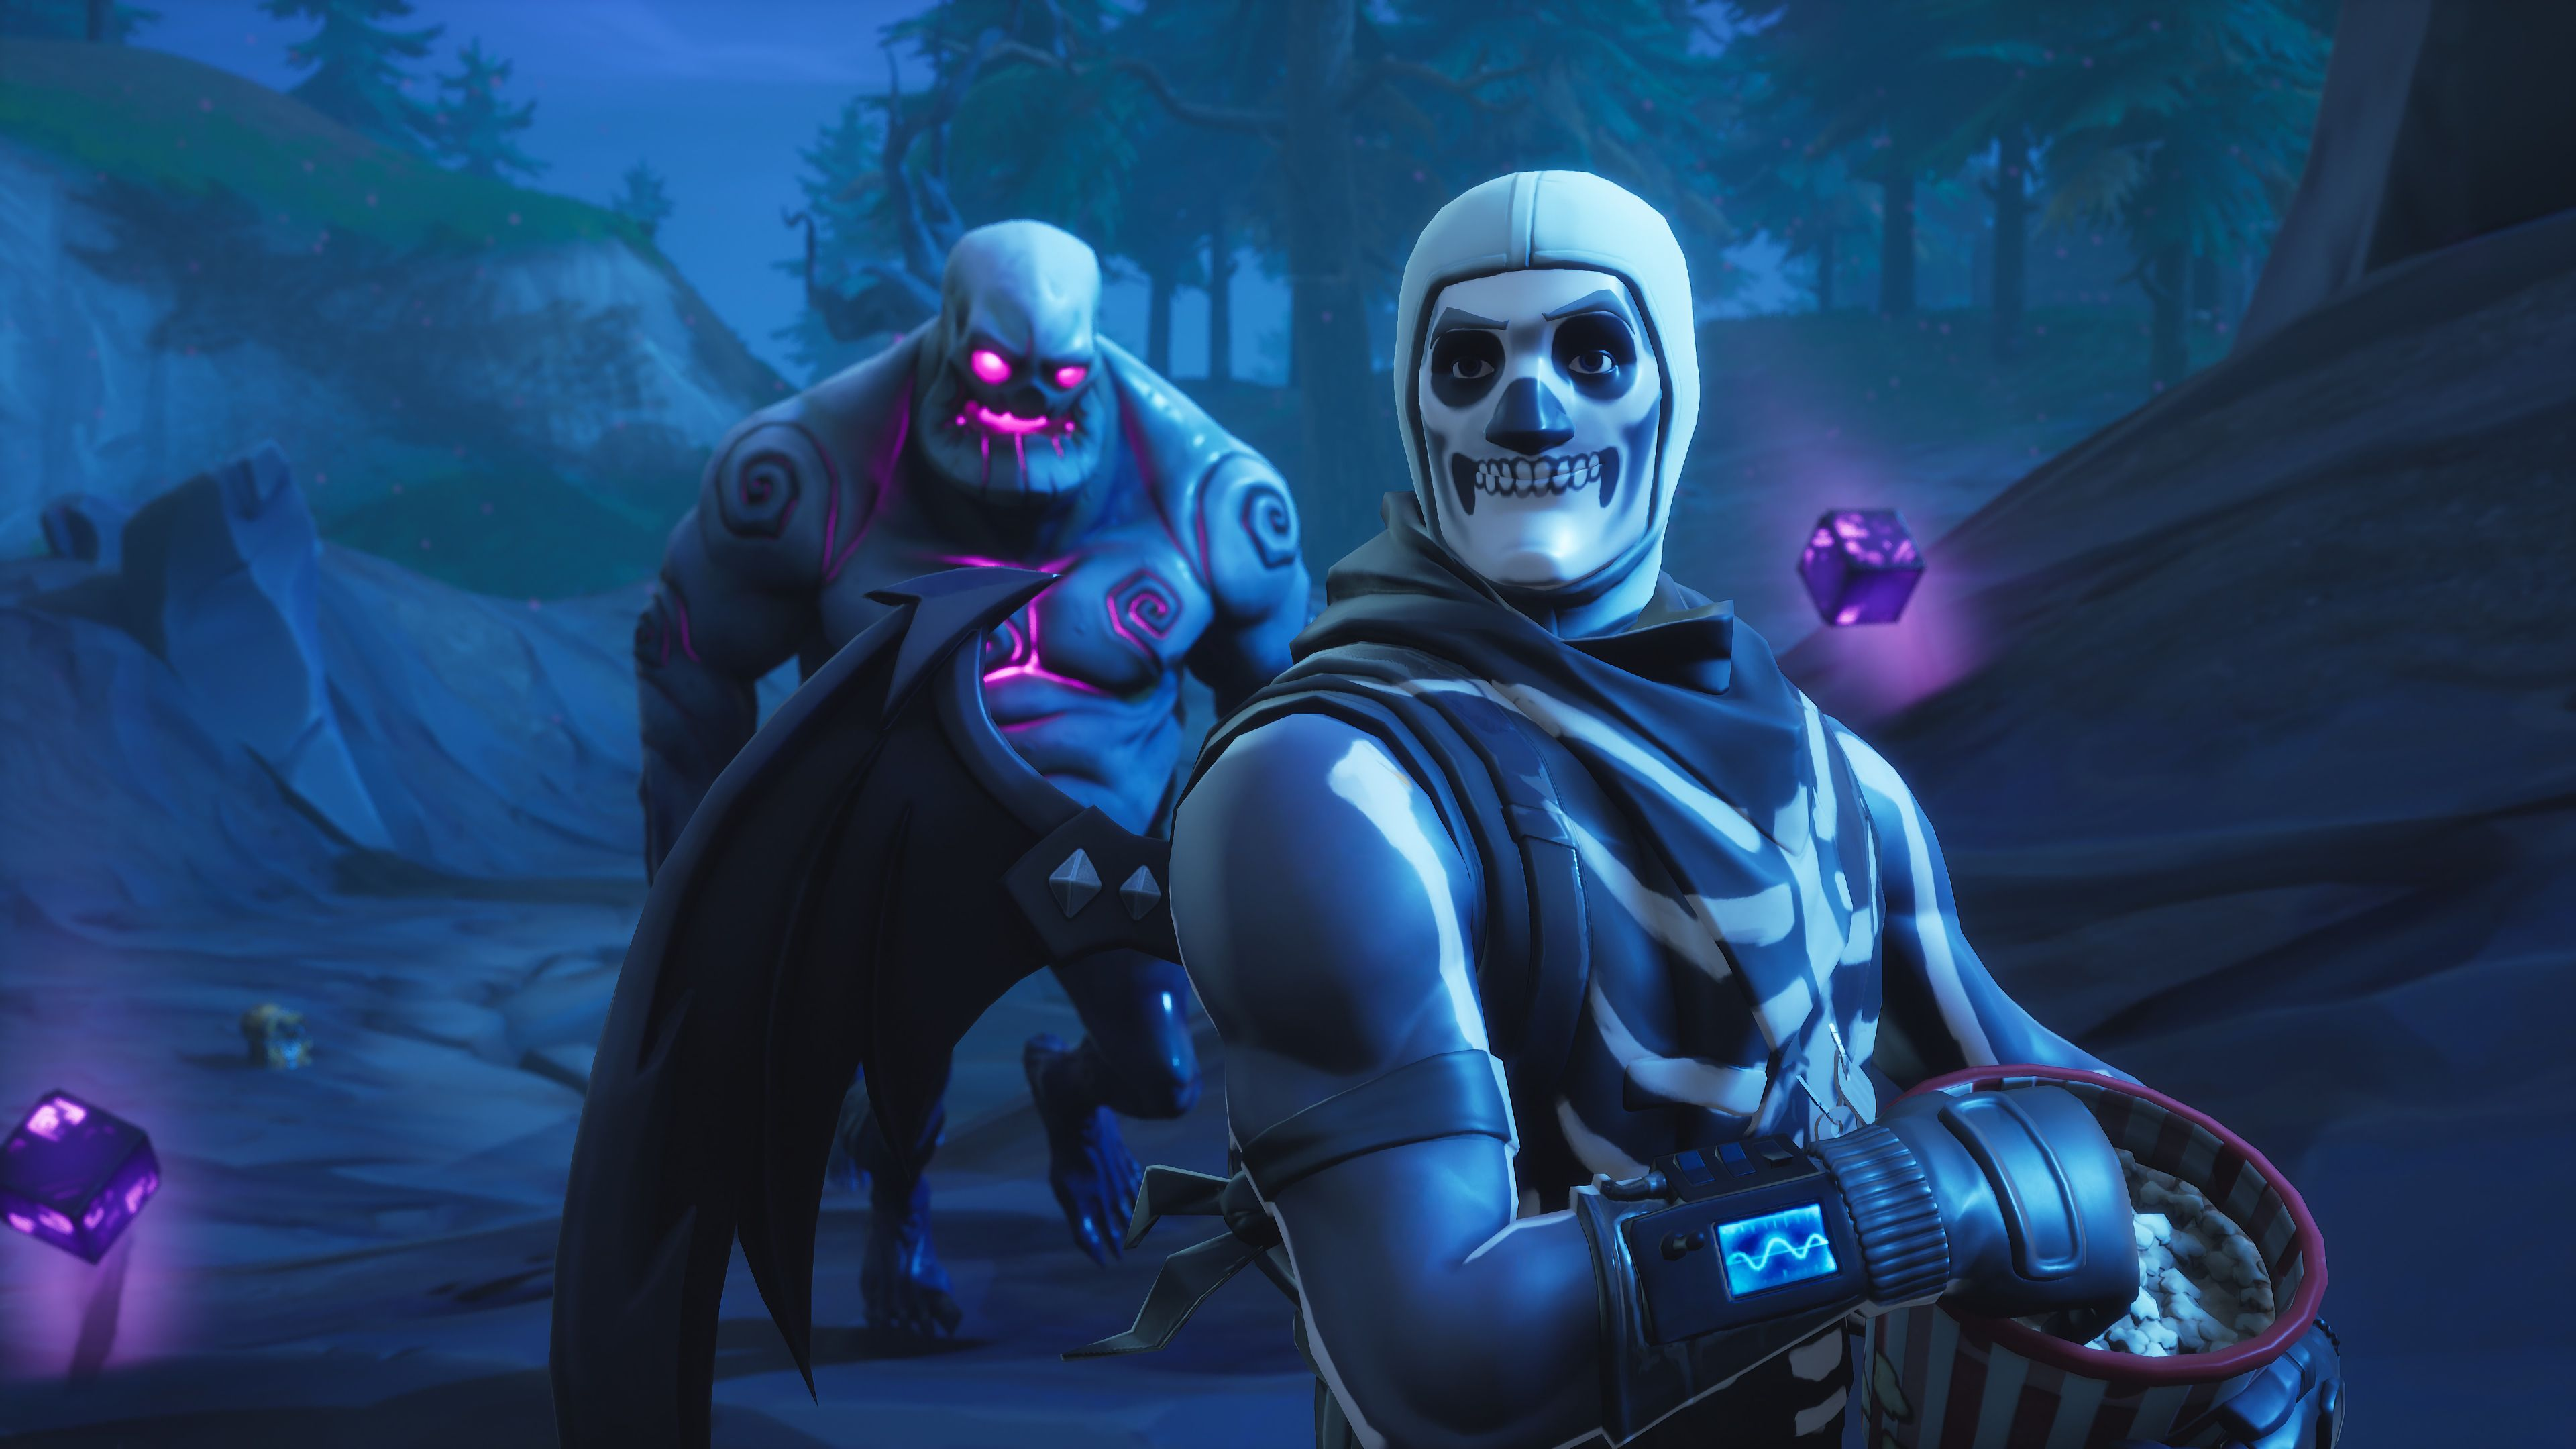 Skull Trooper Fortnite Battle Royale 4k 25555 Fortnite Skulls Drawing Gaming Wallpapers